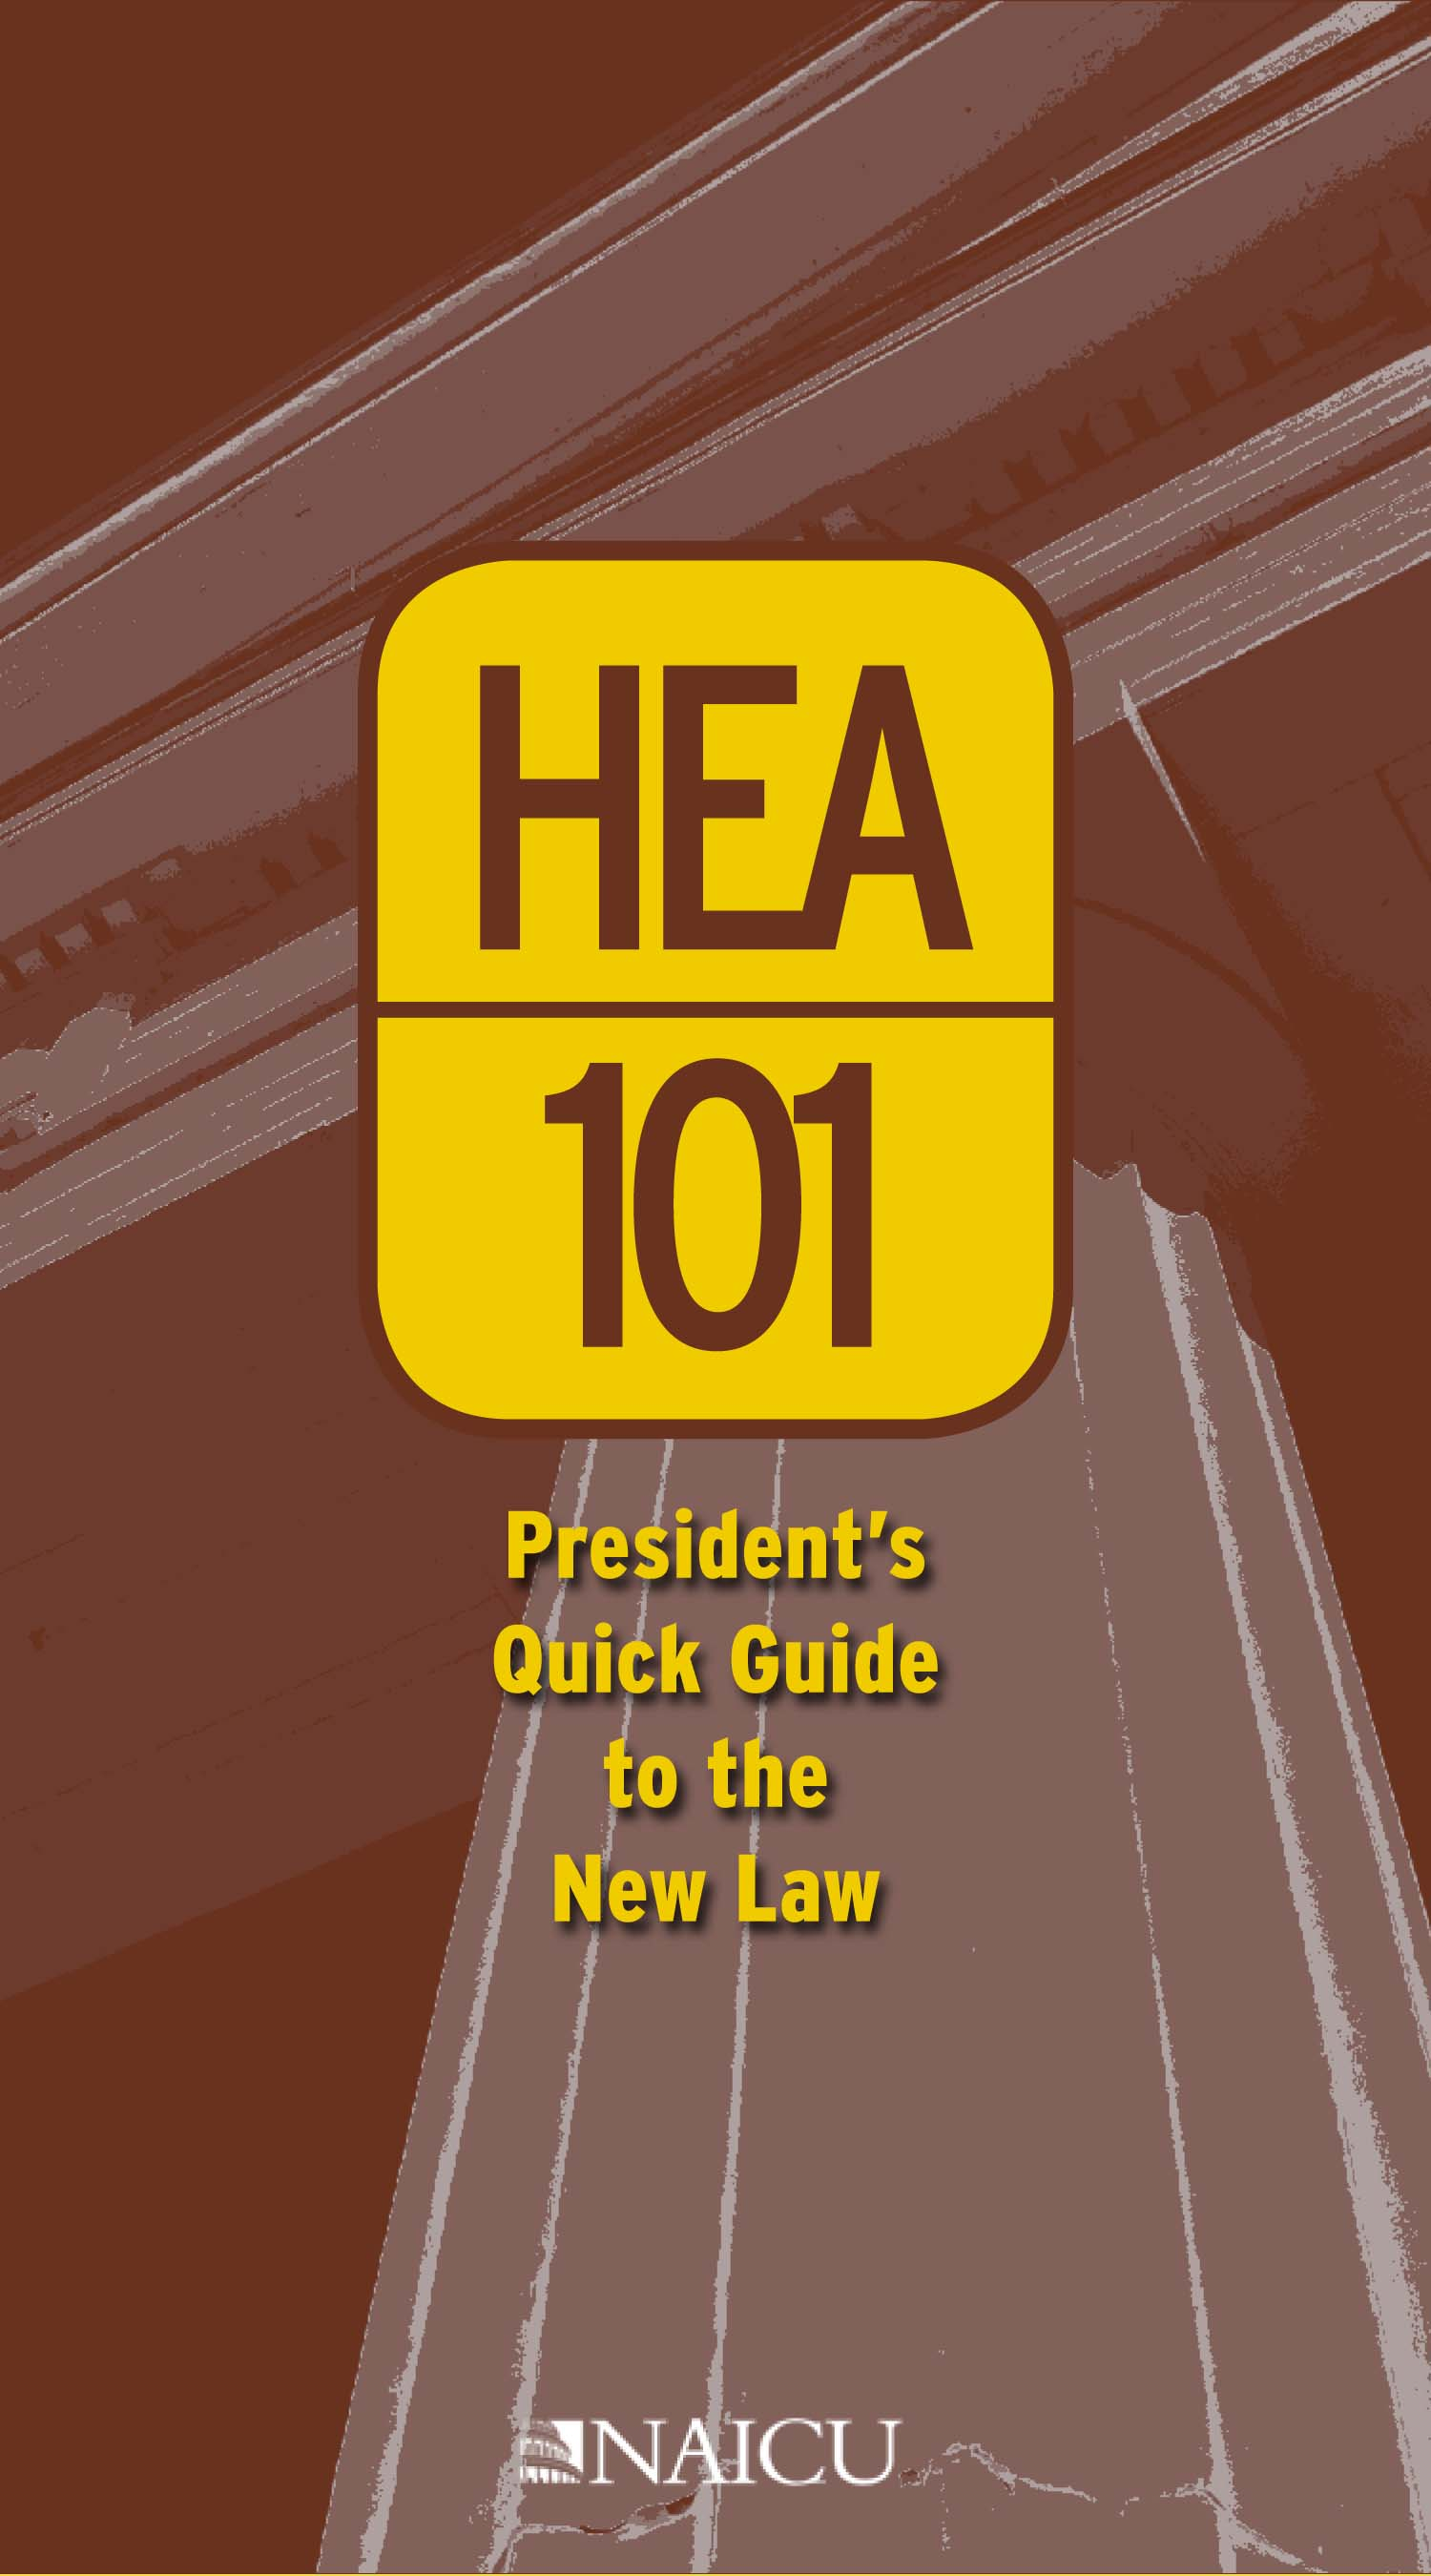 HEA 101 Quick Guide Cover